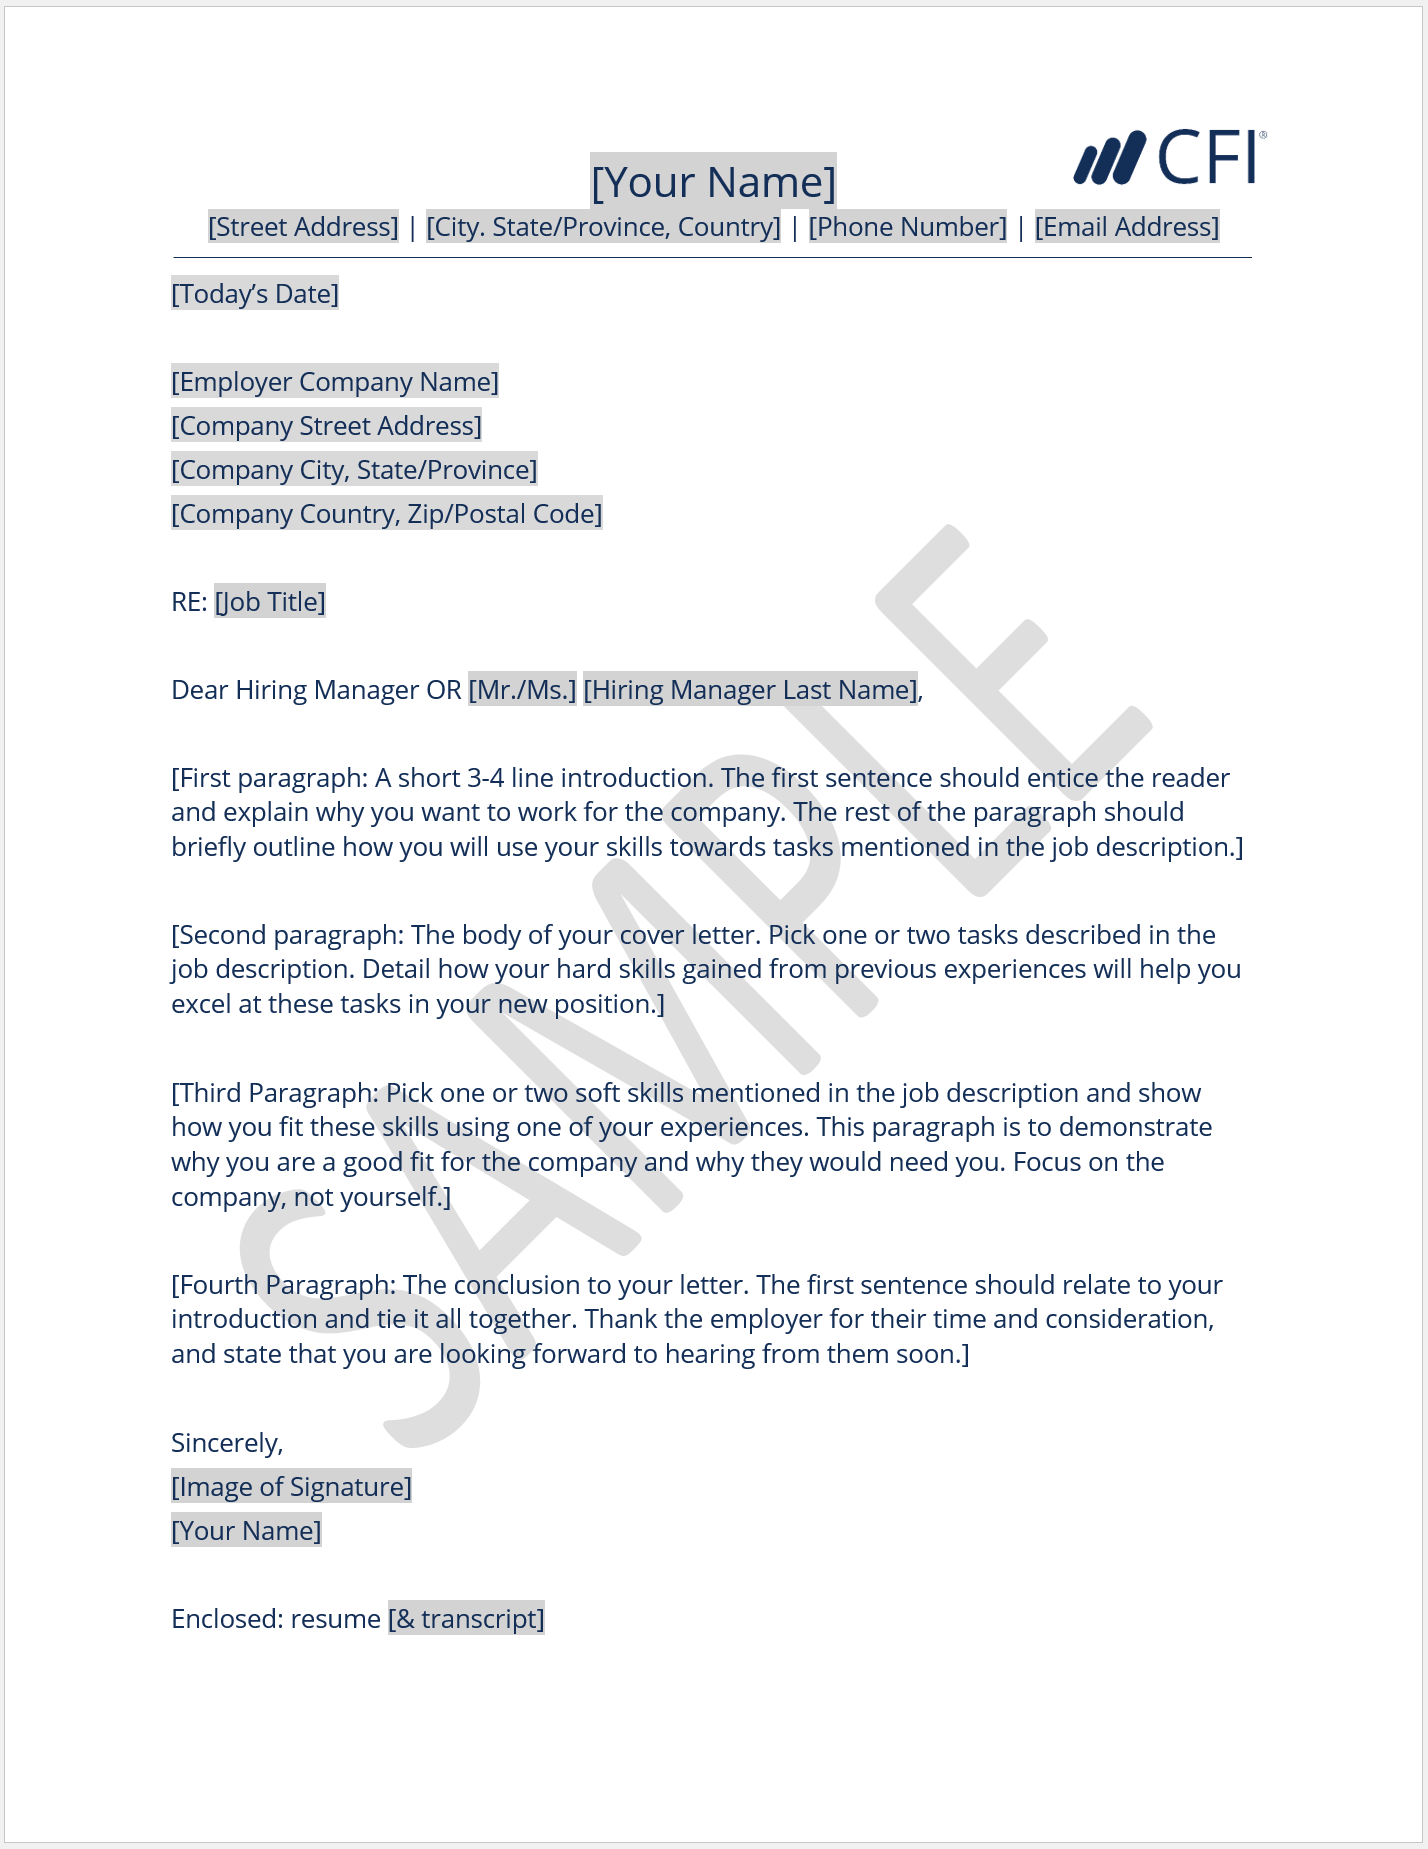 Cover Letter - How to Write a Cover Letter - Template and Examples